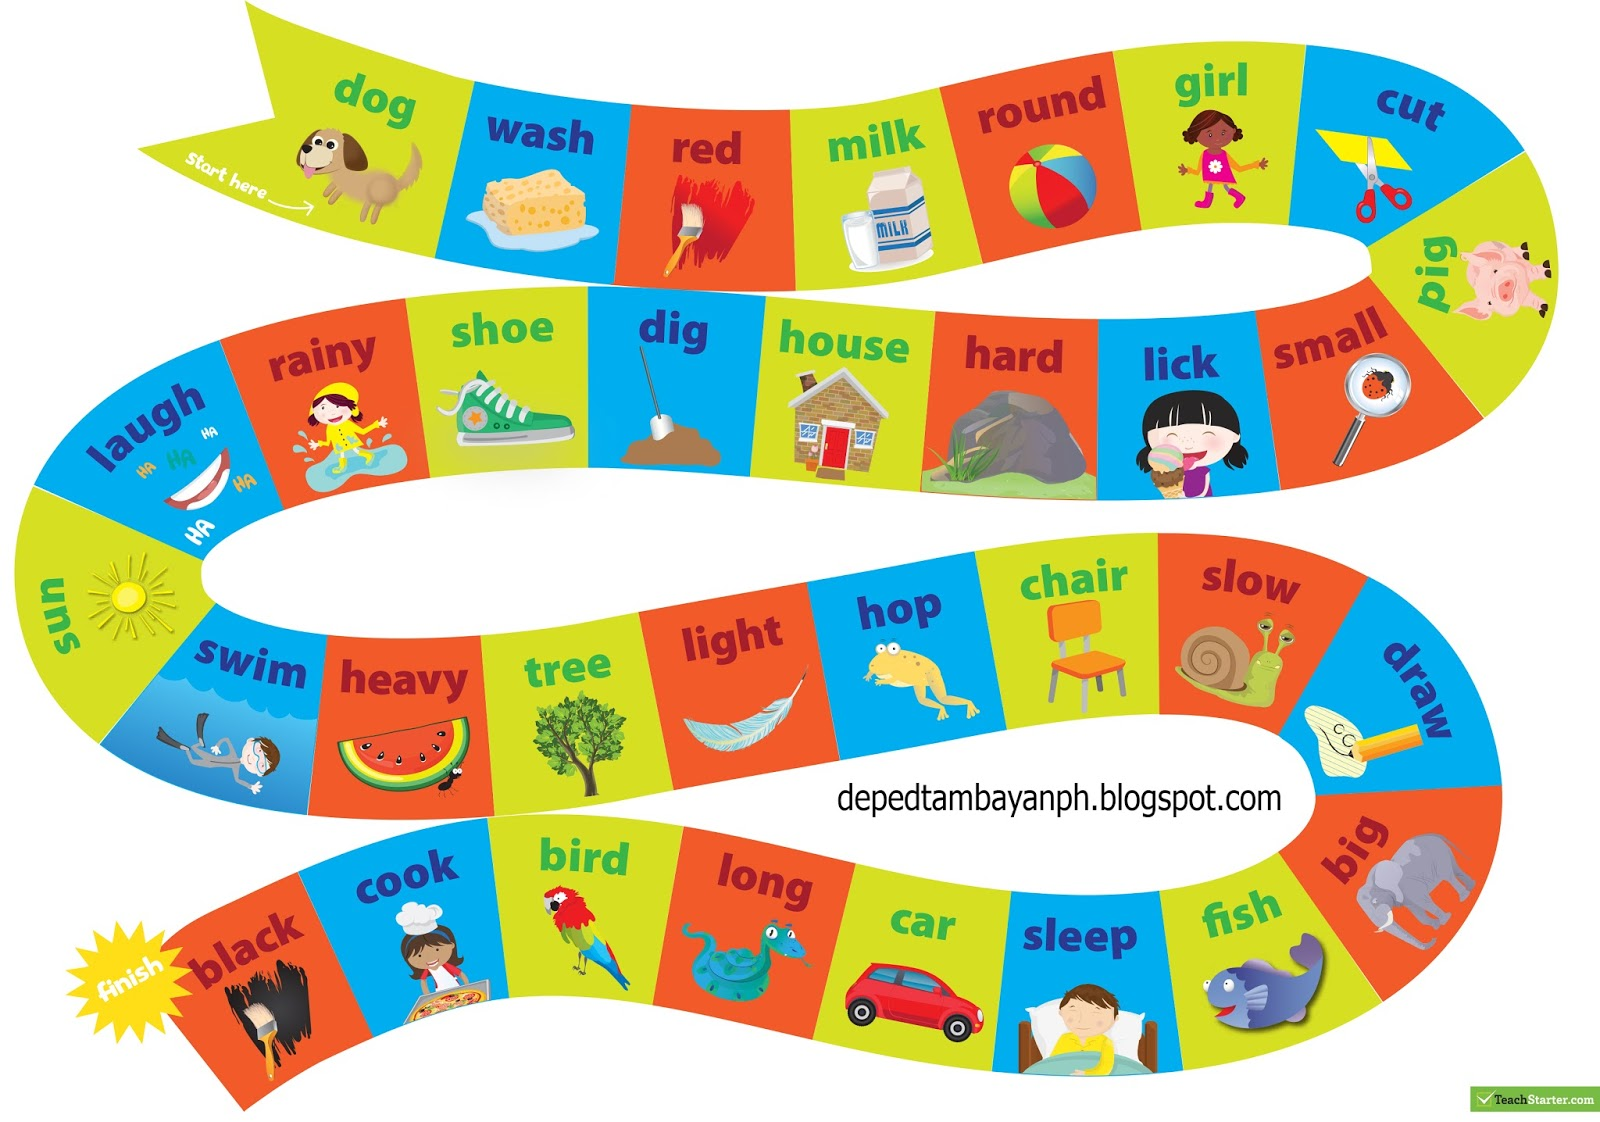 Nouns, Verbs and Adjectives Board Game | DEPED TAMBAYAN PH